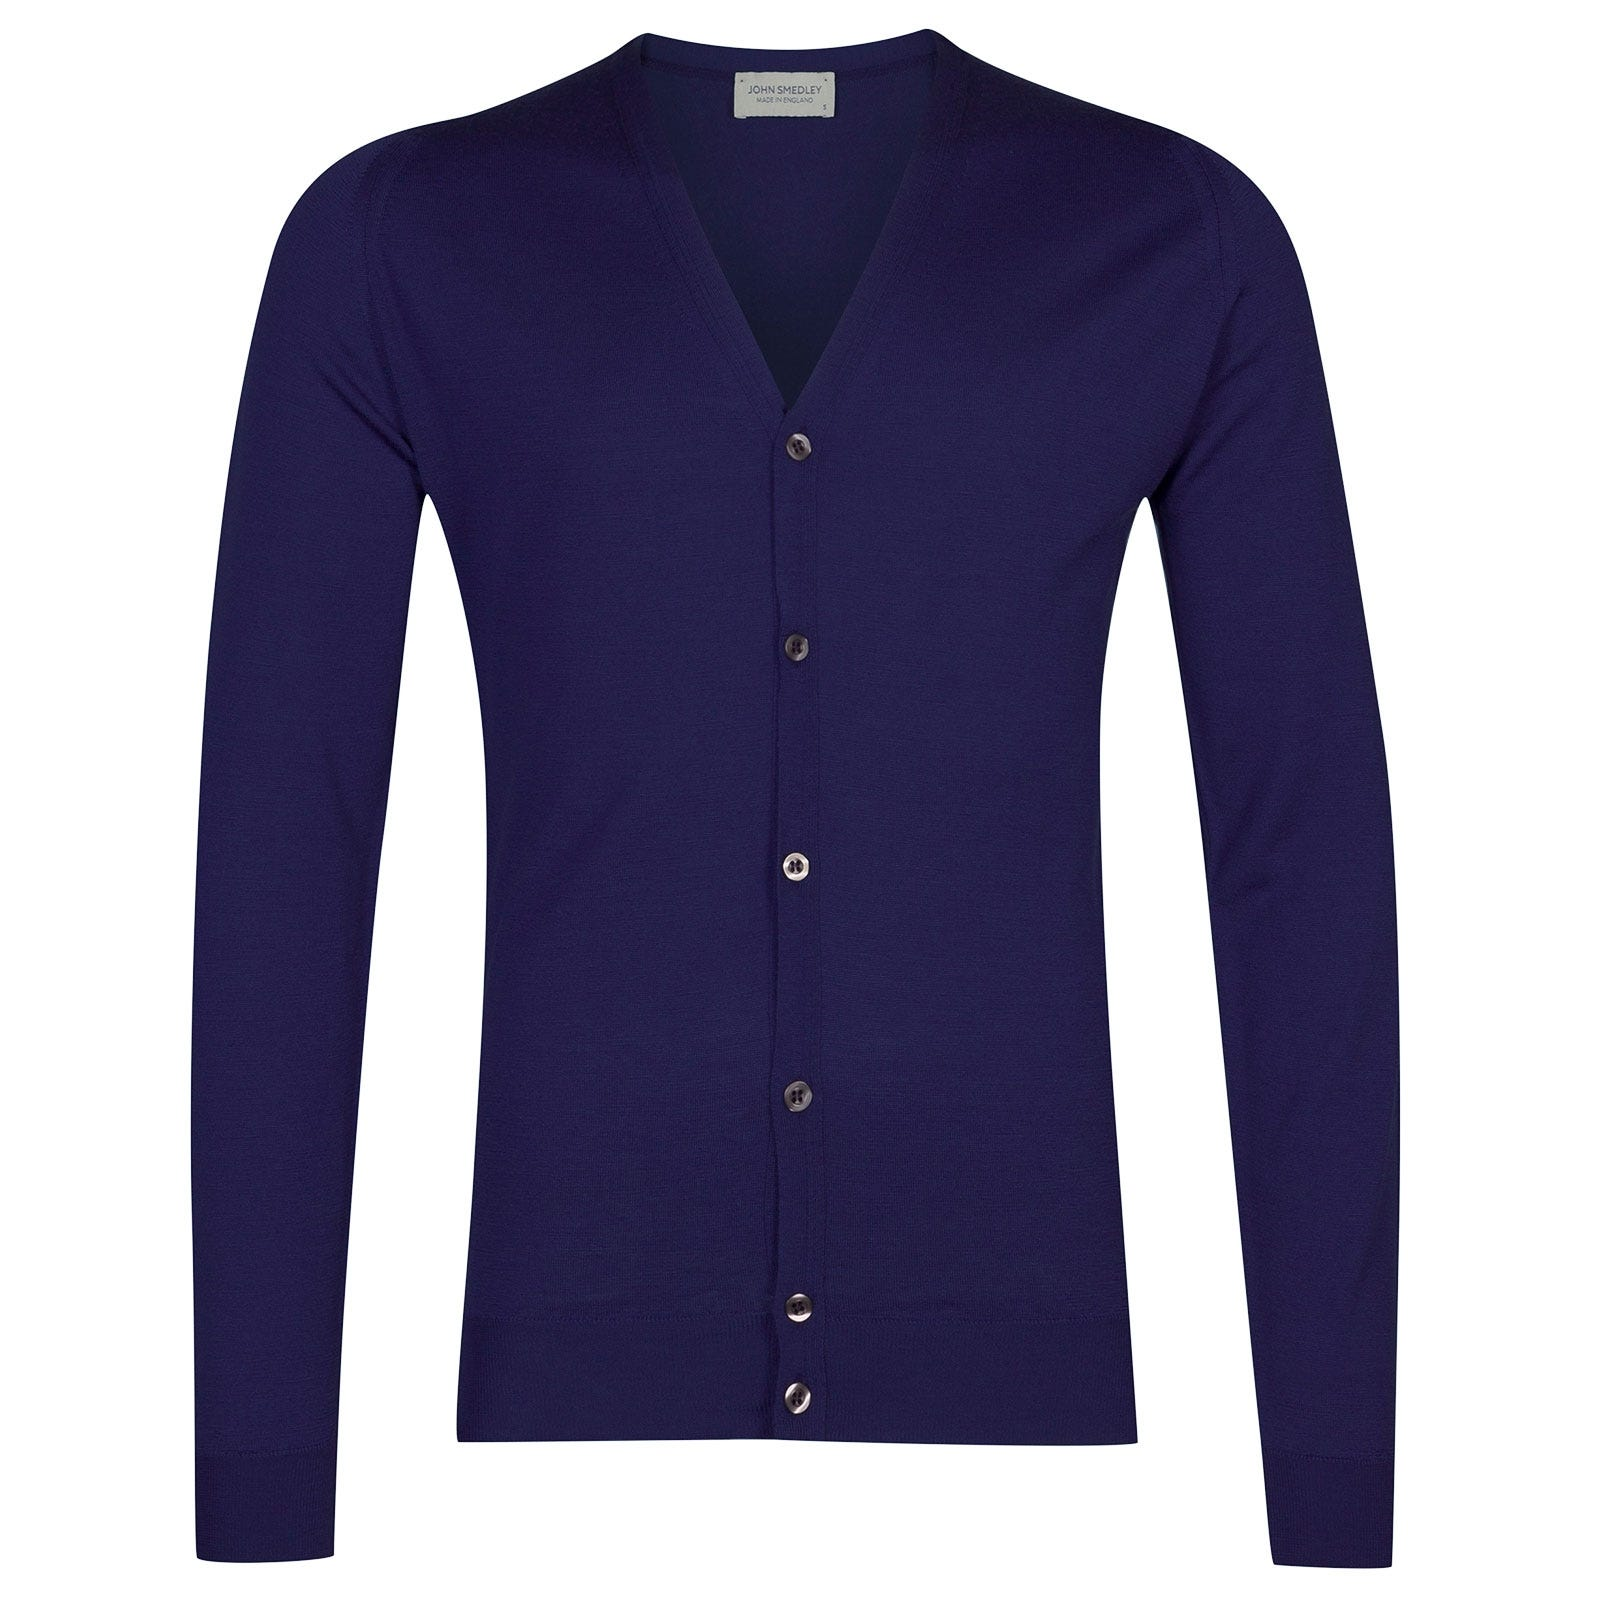 John Smedley Petworth Merino Wool Cardigan in Serge Blue-M